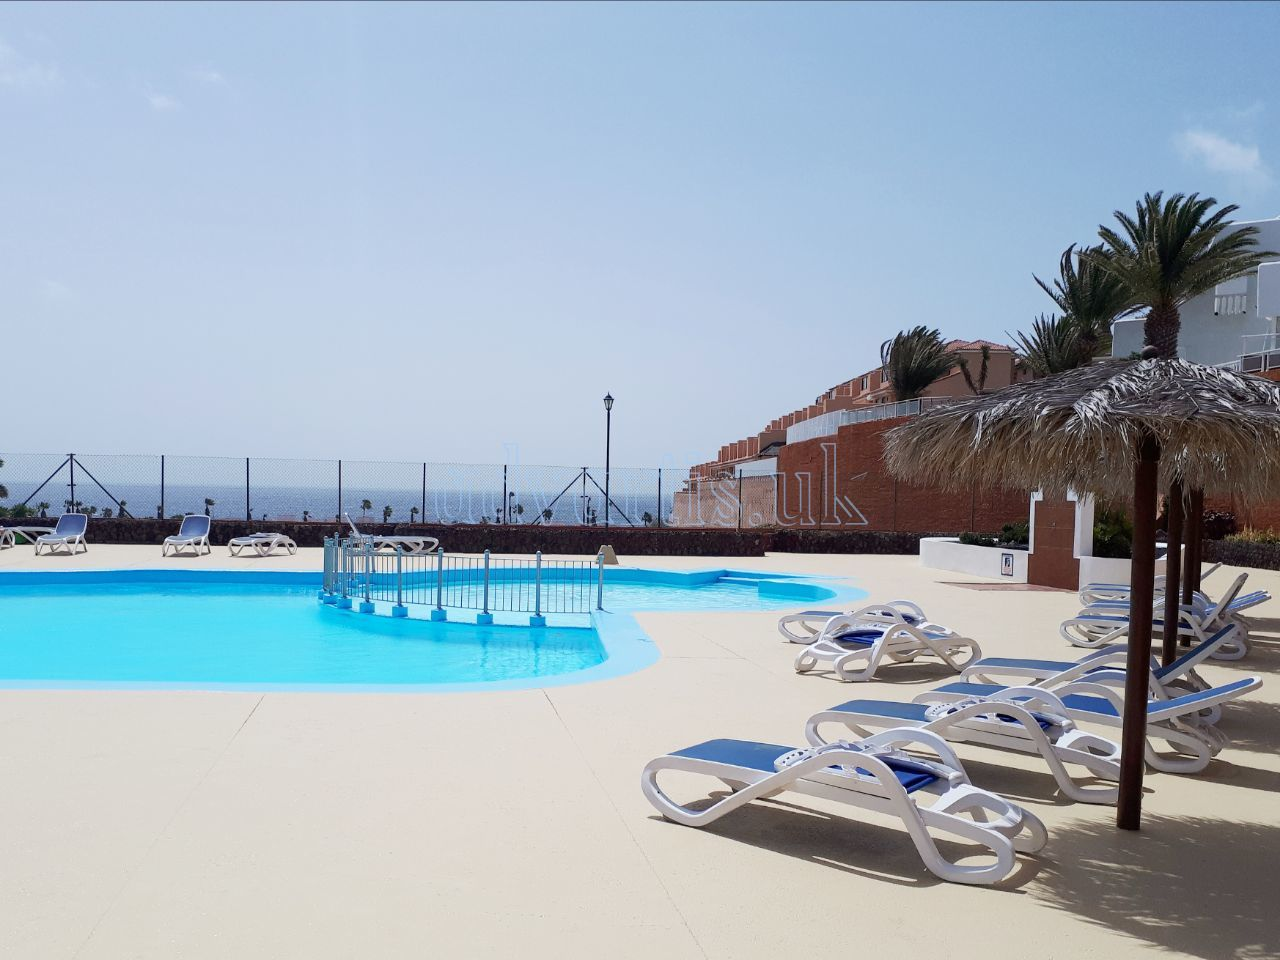 2 bedroom apartment for sale in Golf del Sur Tenerife €152.000